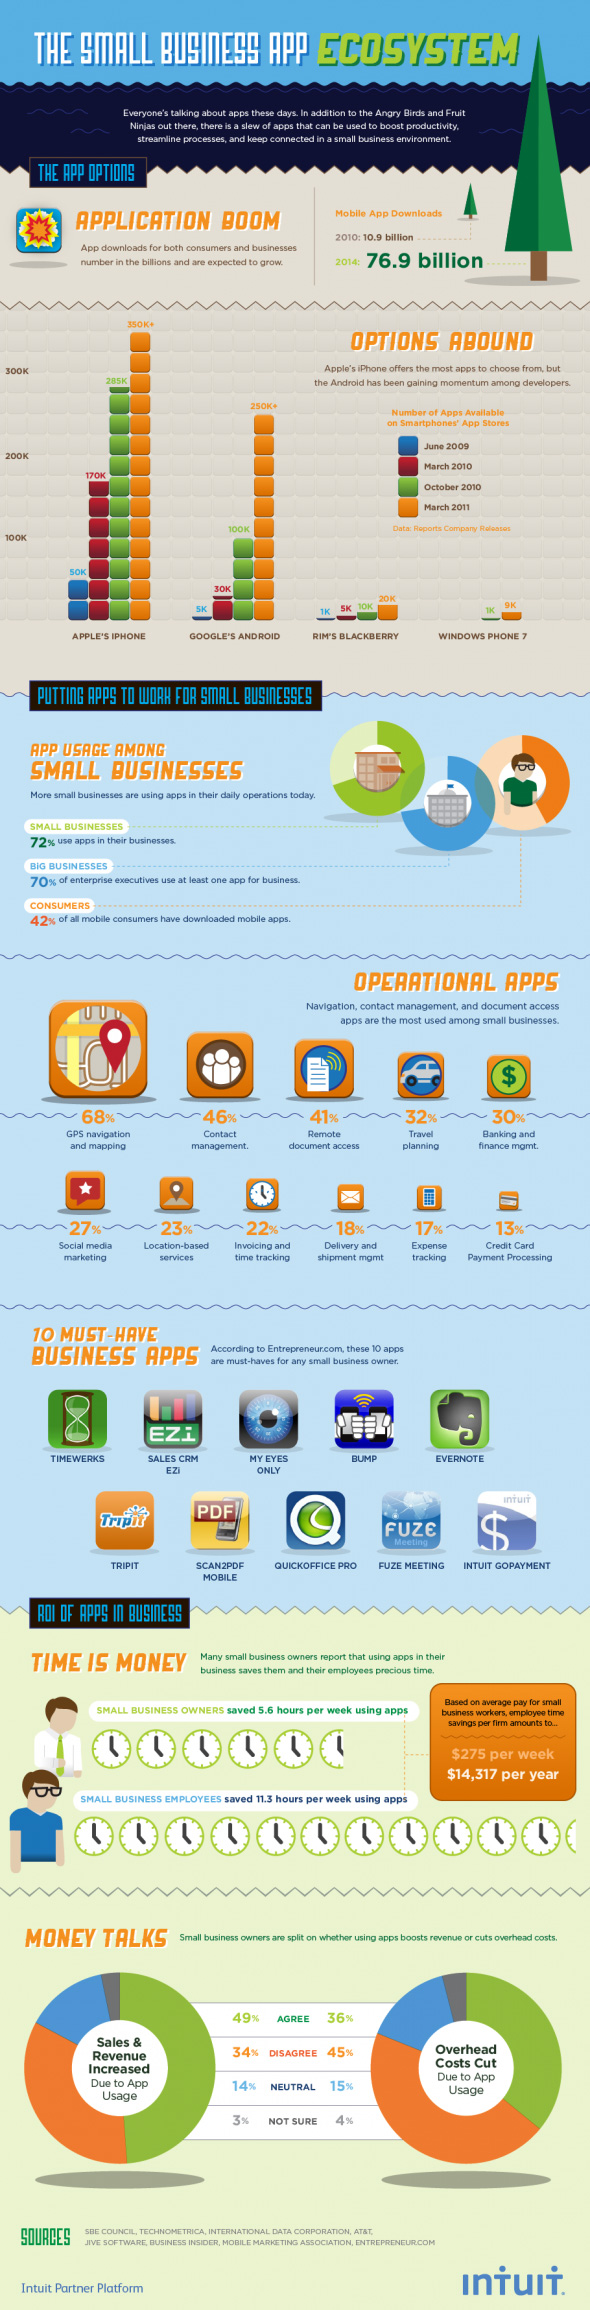 Infographic: Small Business AppNation